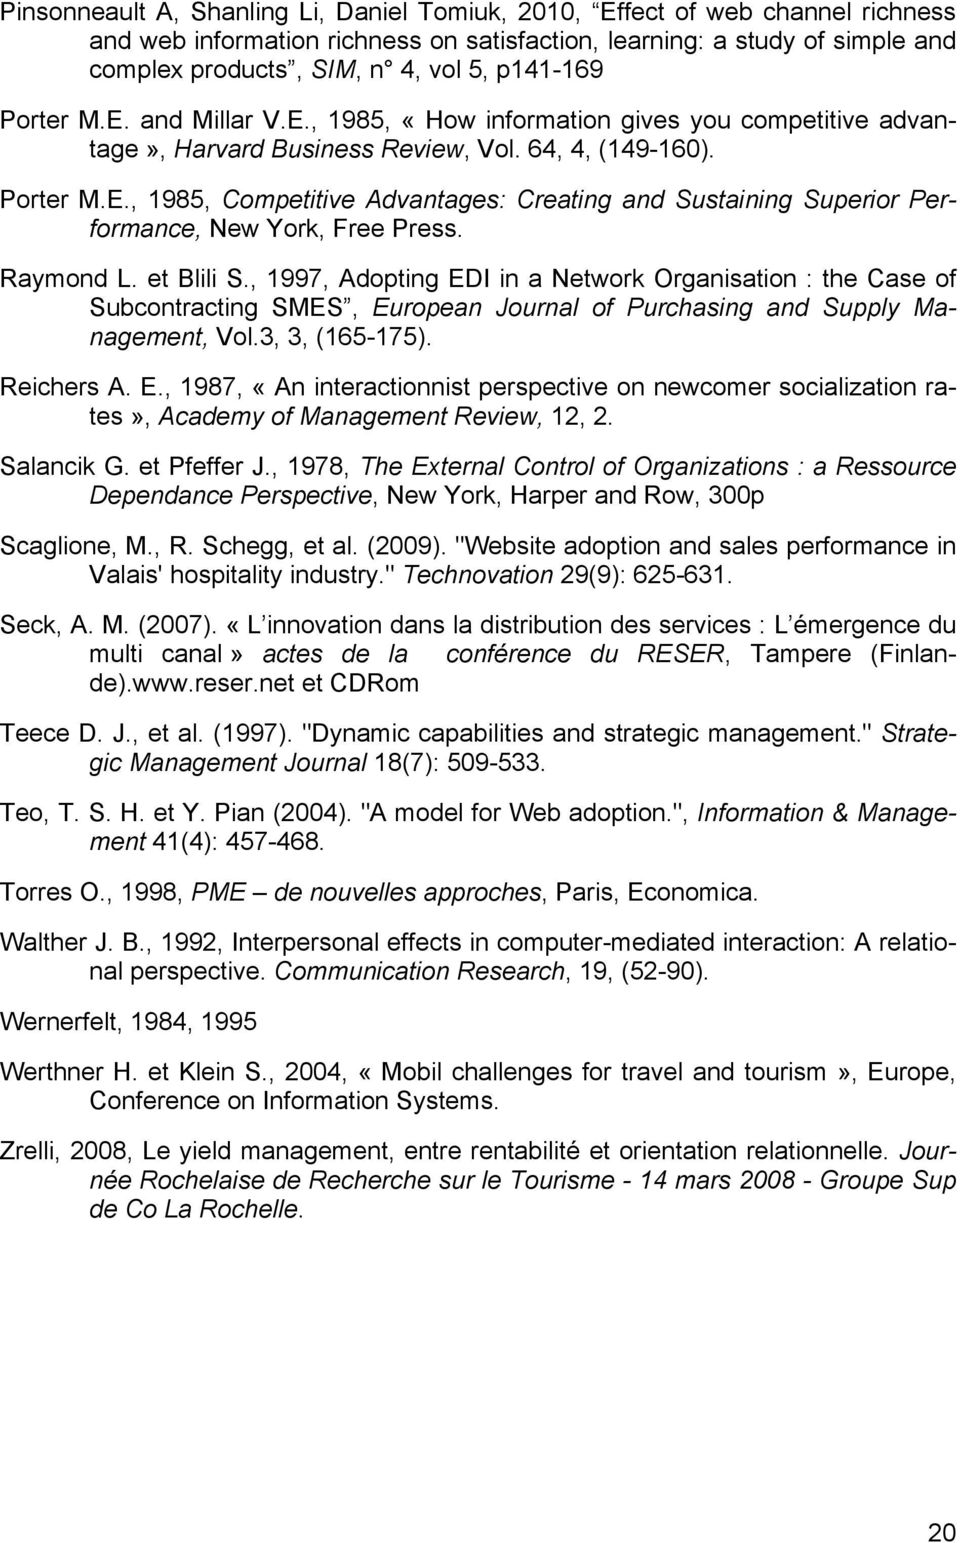 Raymond L. et Blili S., 1997, Adopting EDI in a Network Organisation : the Case of Subcontracting SMES, European Journal of Purchasing and Supply Management, Vol.3, 3, (165-175). Reichers A. E., 1987, «An interactionnist perspective on newcomer socialization rates», Academy of Management Review, 12, 2.